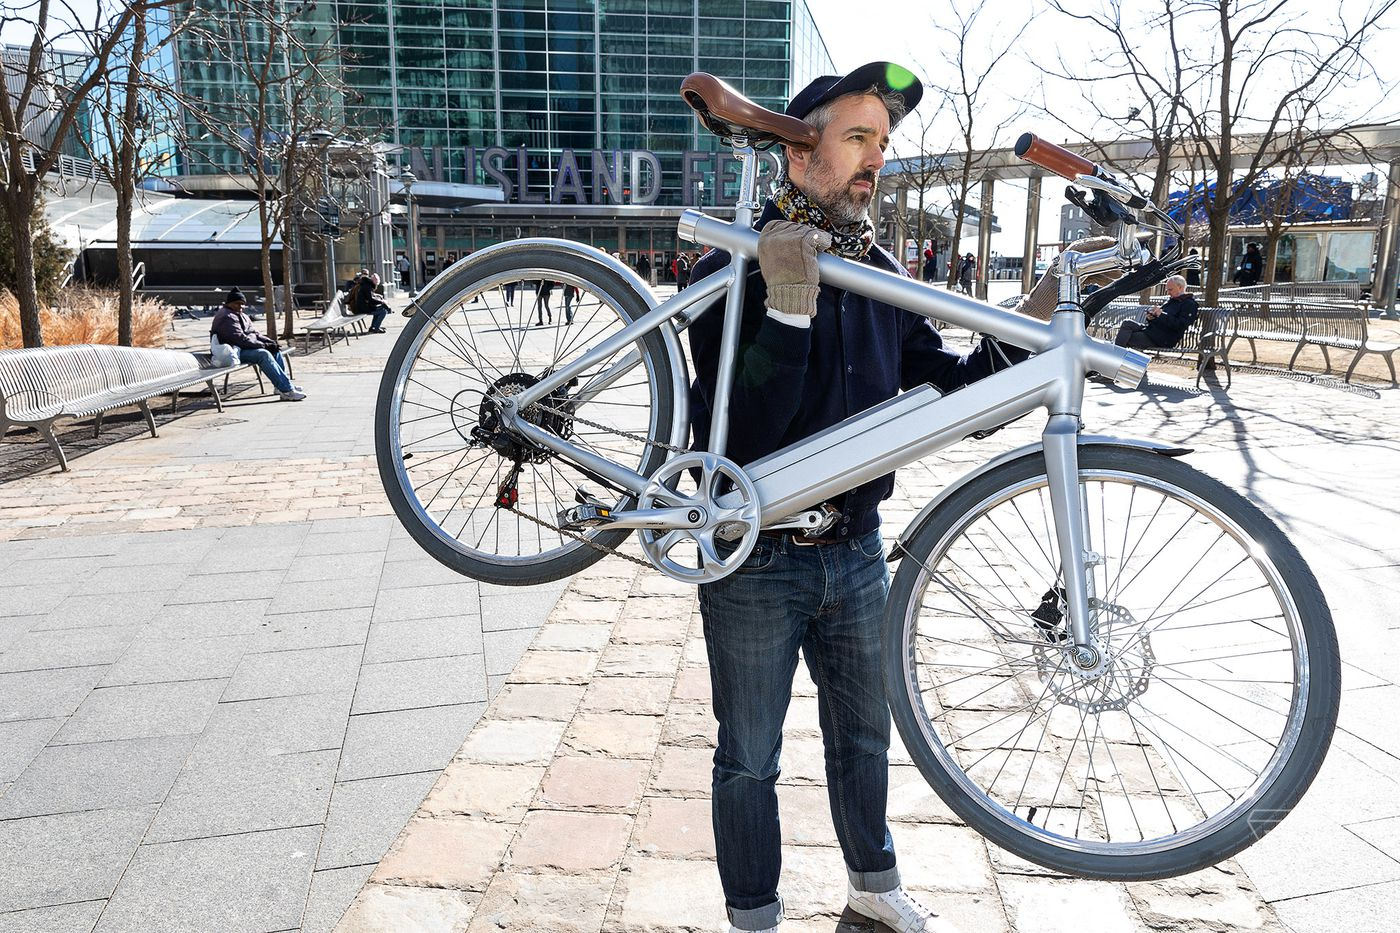 Wing Bike is a stylish electric bicycle for that won't break the